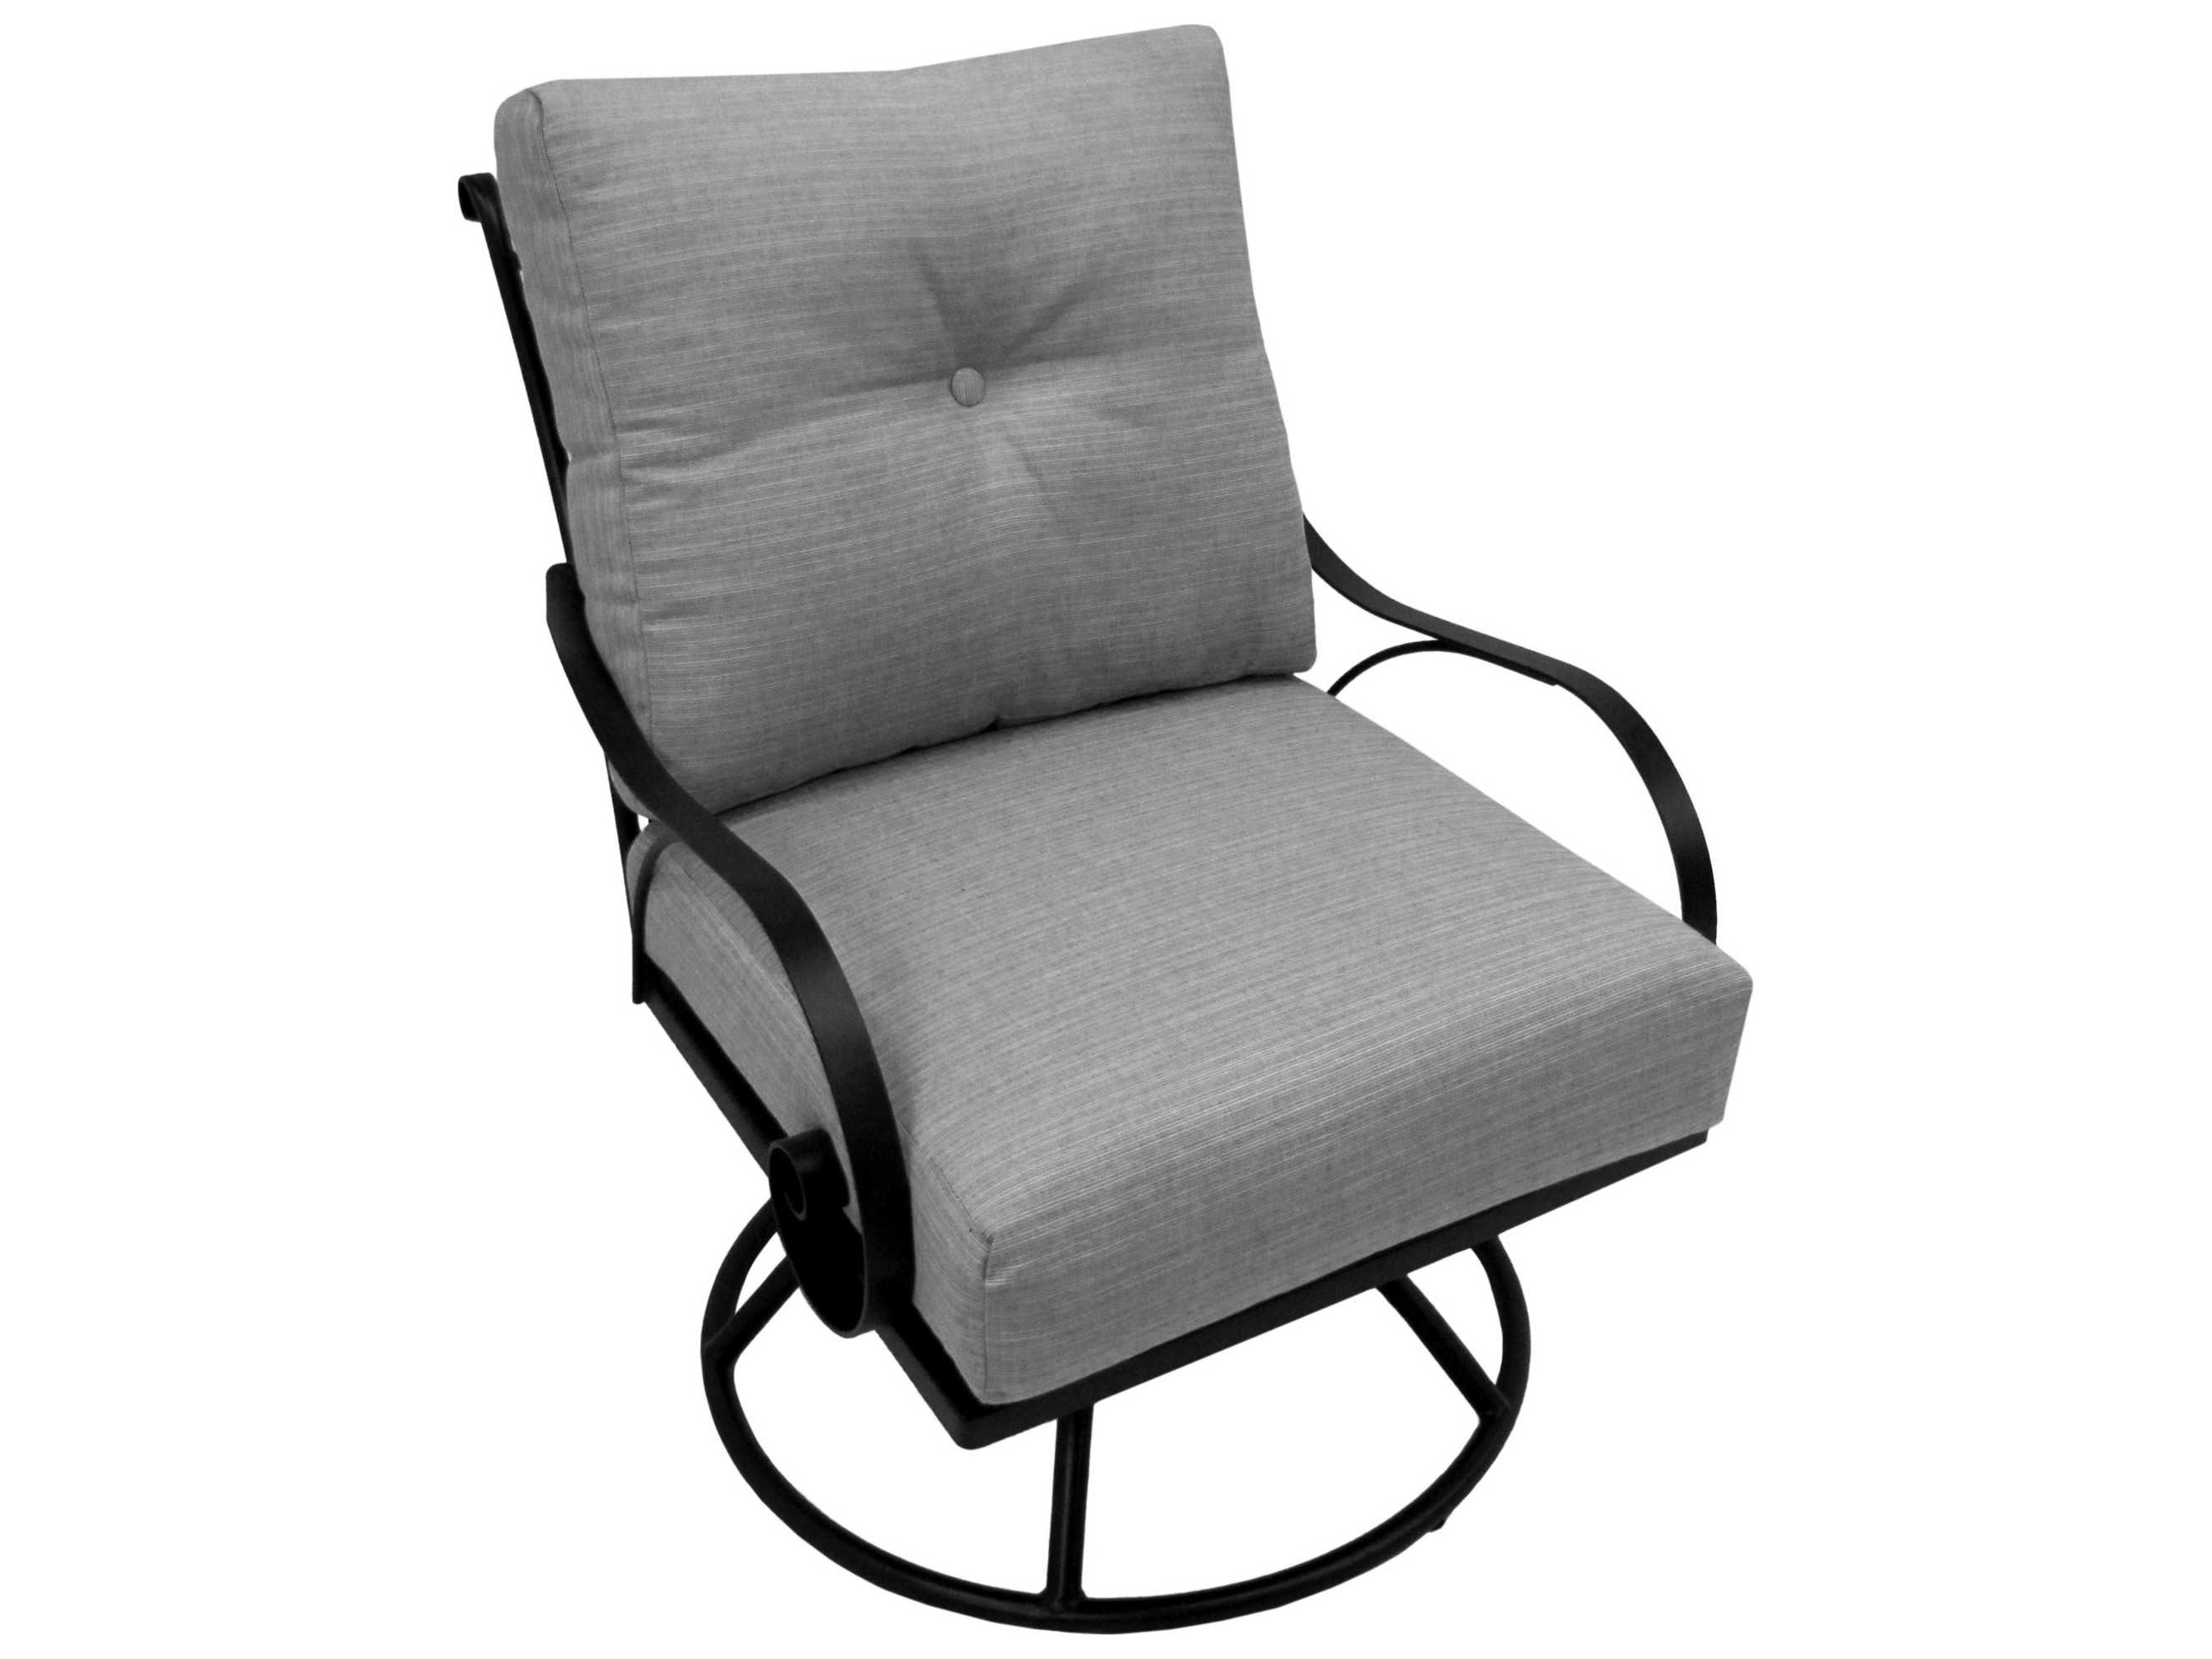 Meadowcraft Monticello Wrought Iron Deep Seated Club